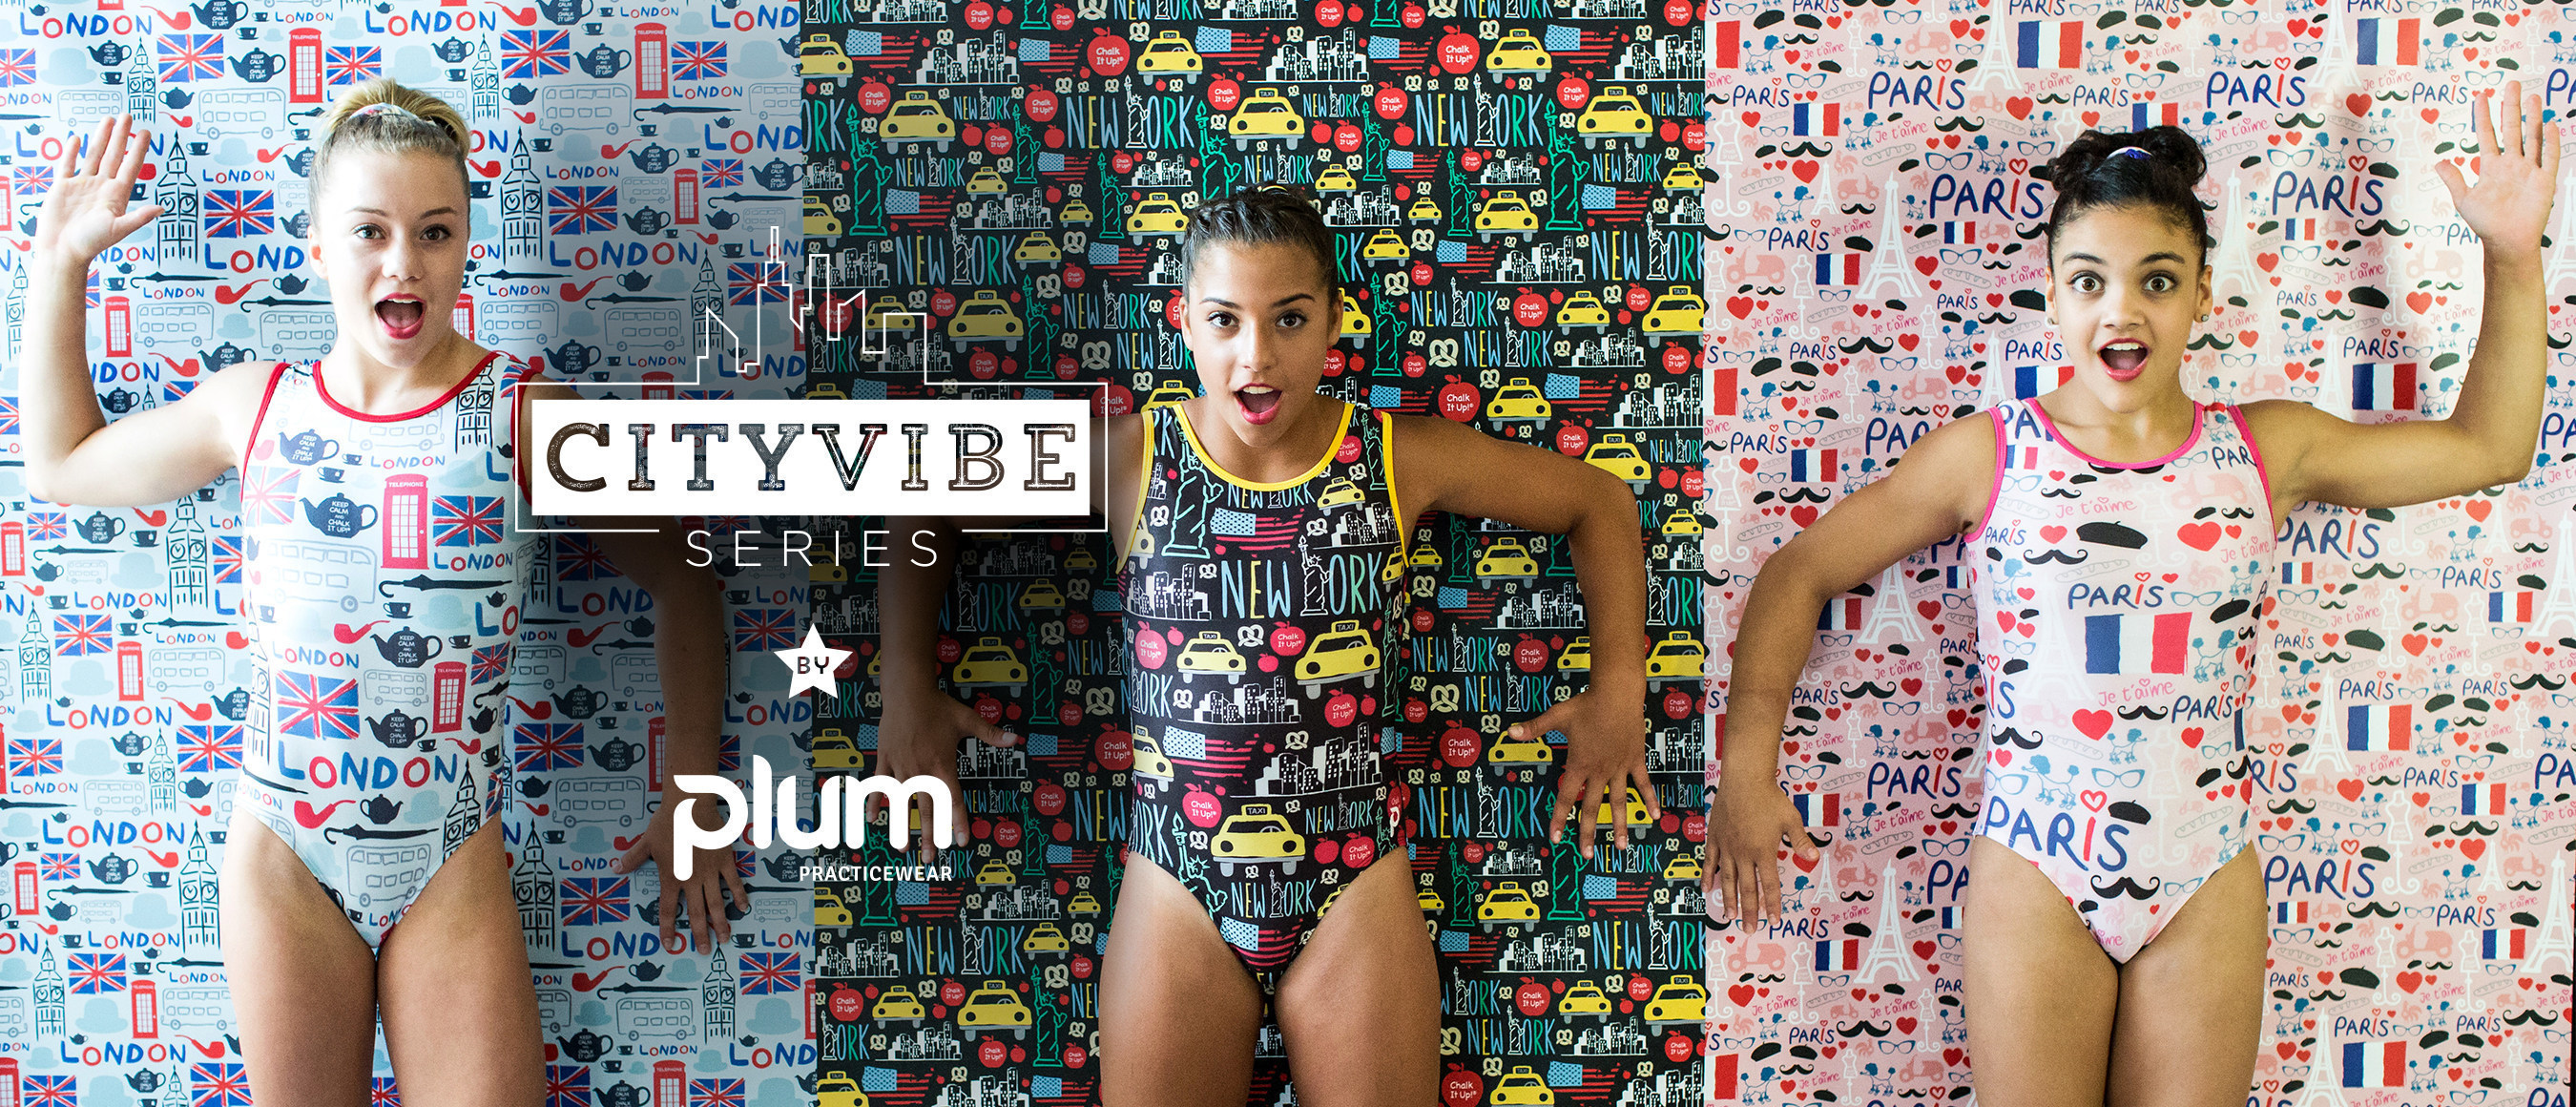 "Plum Practicewear's ""CityVibe"" Leotard Series Features Paris, NYC + London! Available at PlumPracticewear.com. Photo Credit: Bobby Bates"